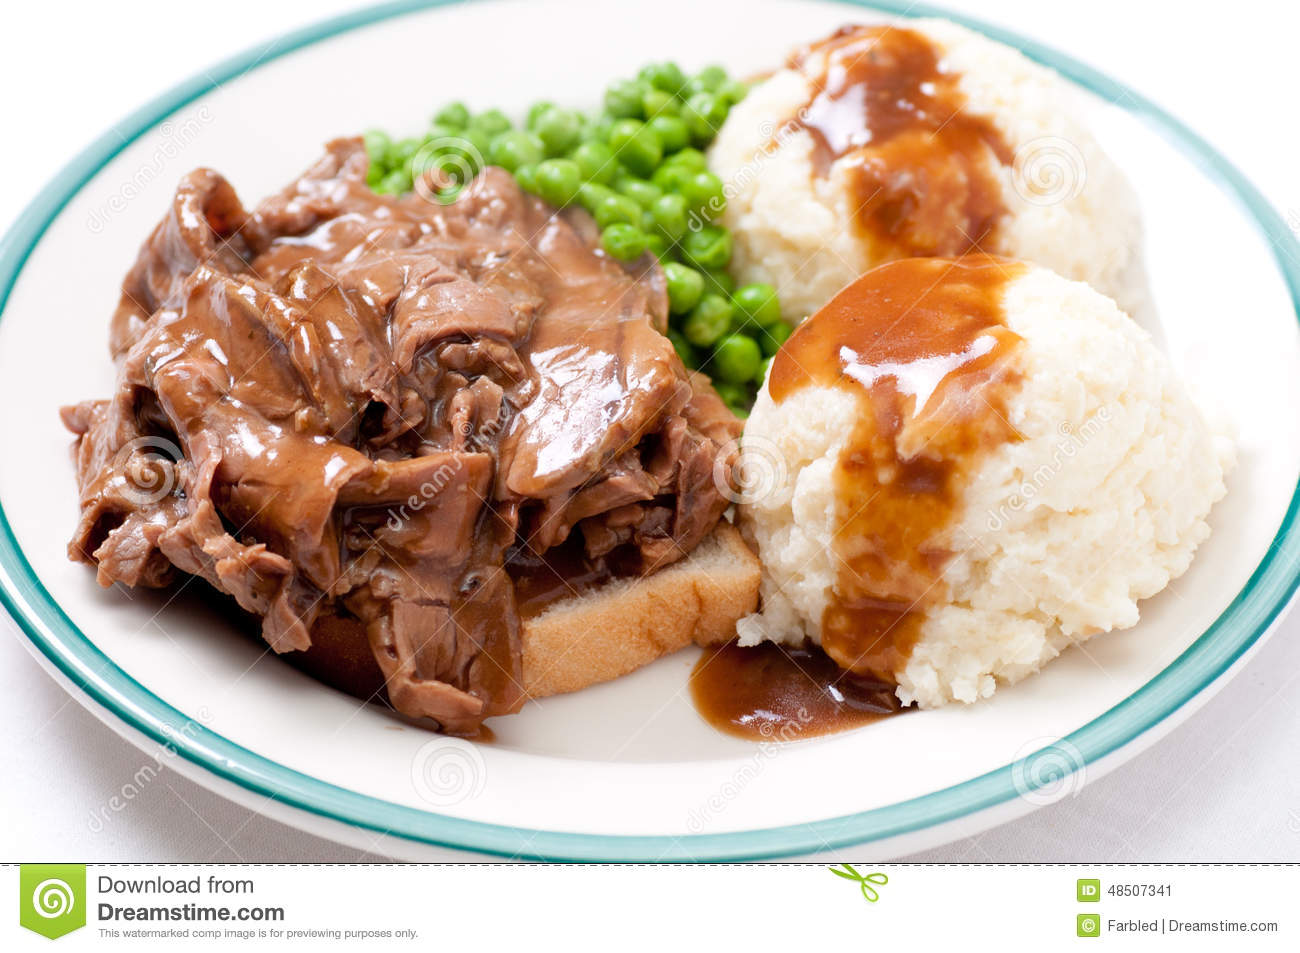 Diner Style Hot Beef Sandwich Stock Image - Image: 48507341